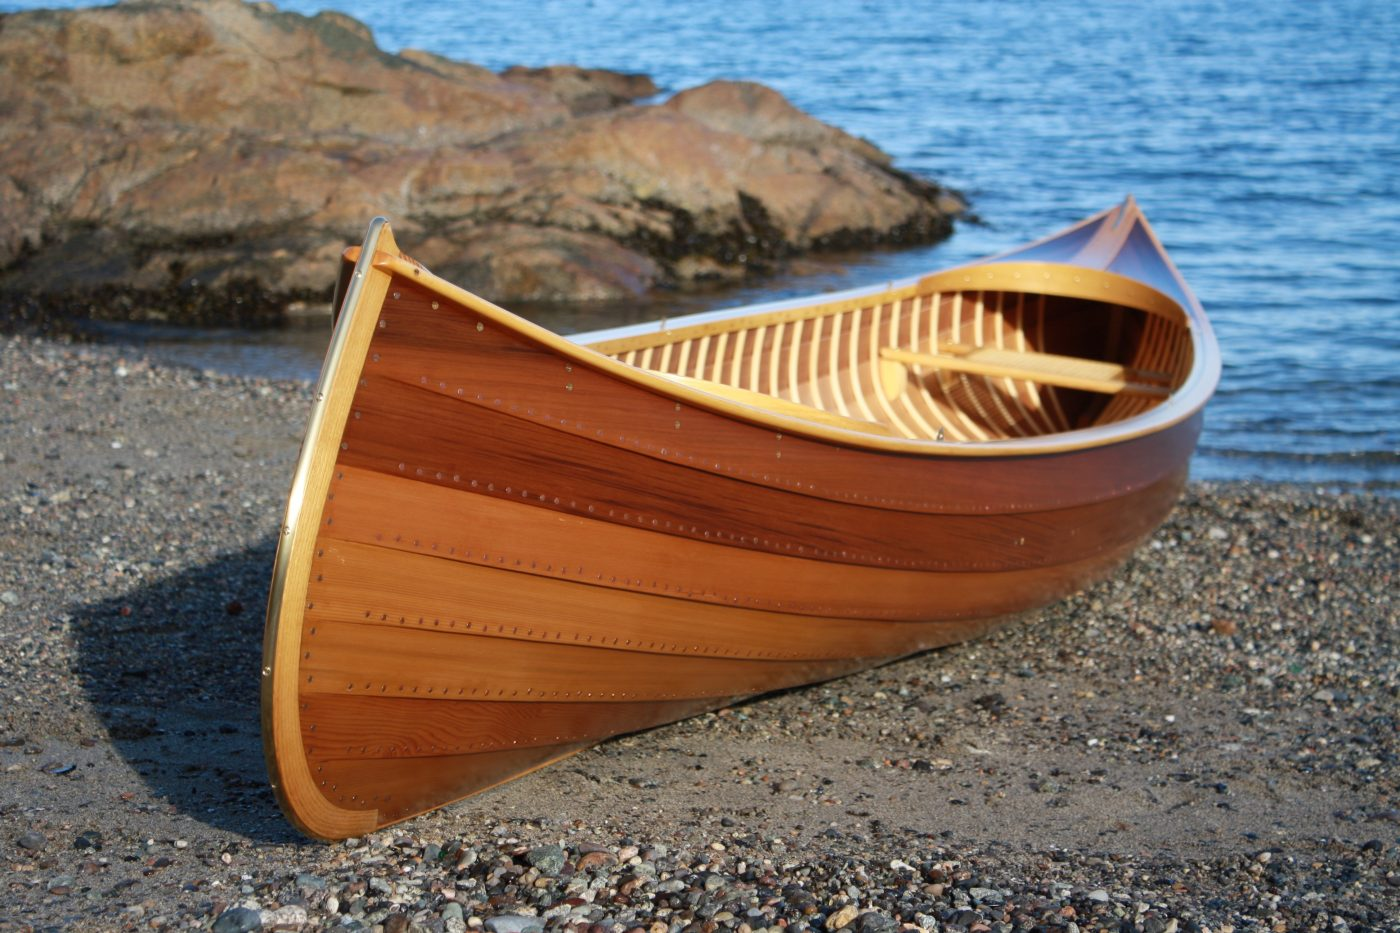 Canadian Ugo canoe on beach